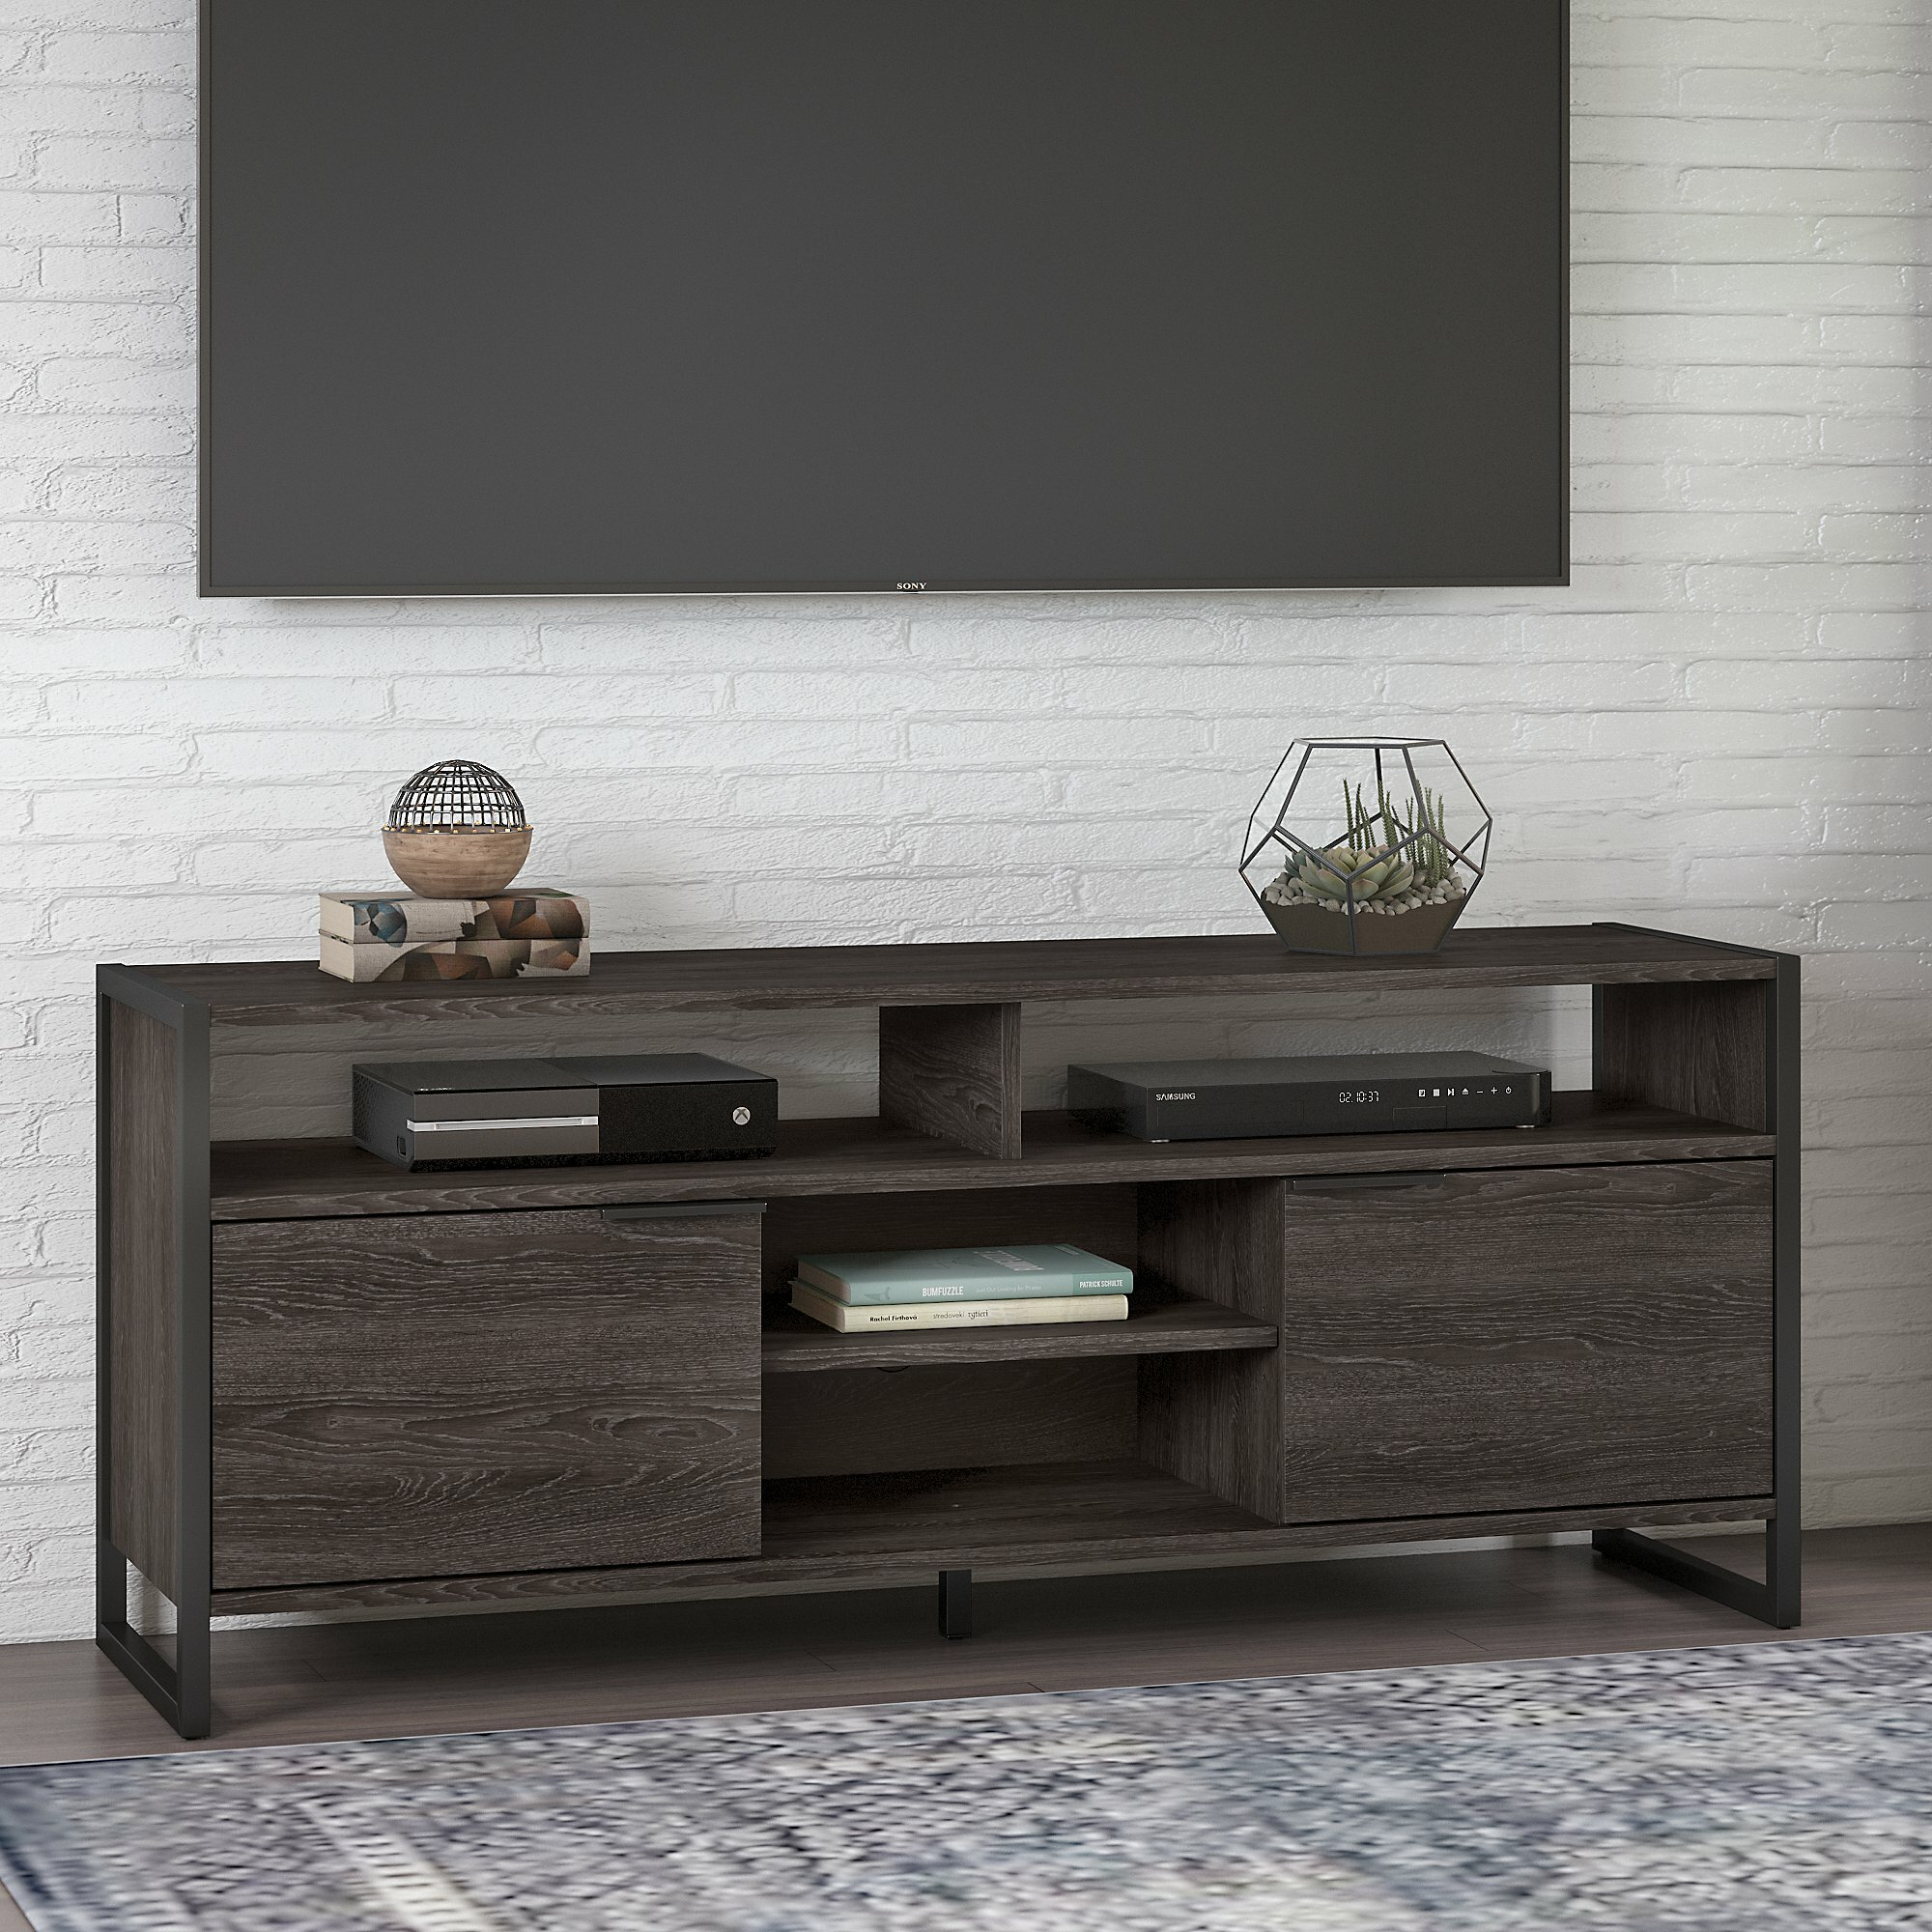 Kathy Ireland Home By Bush Furniture Tv Stand For Tvs Up To 70 Reviews Wayfair